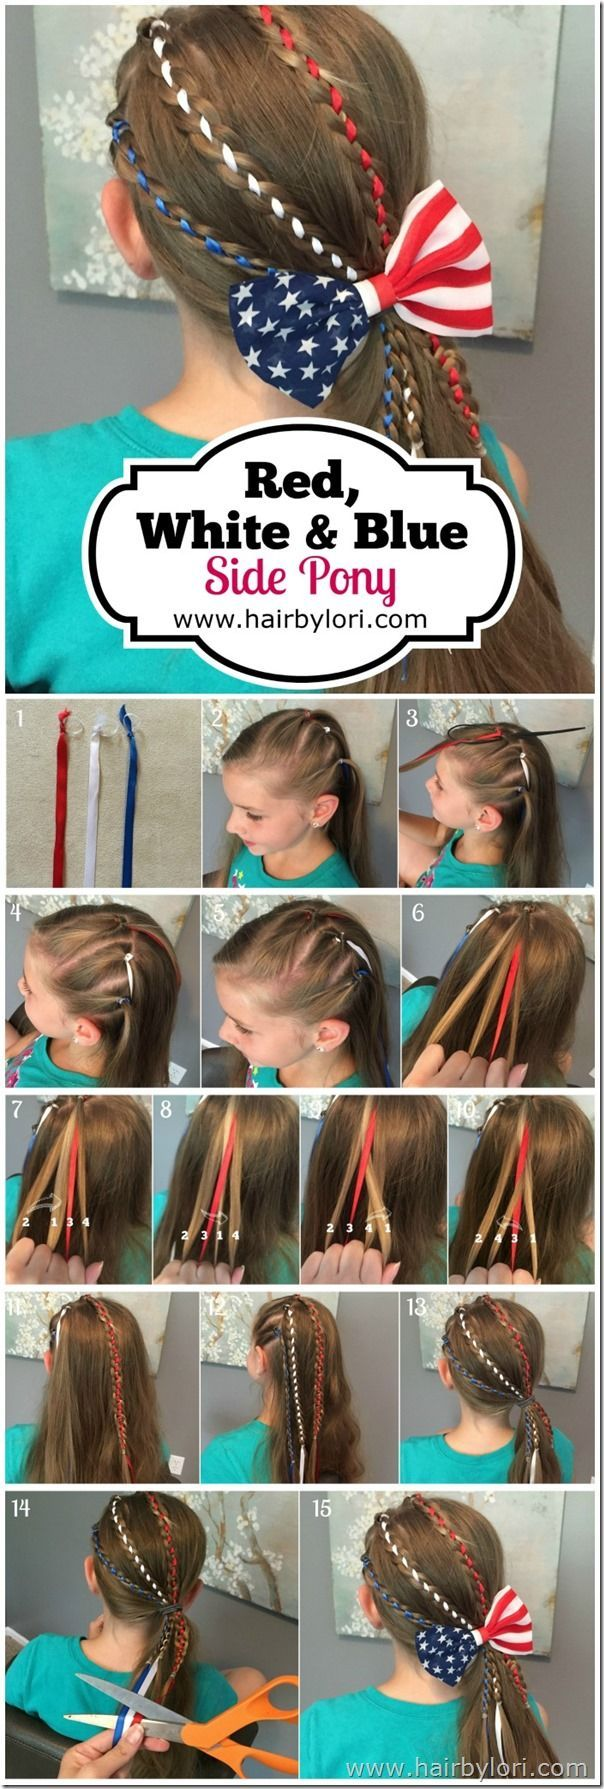 Red white u blue side pony tutorial th of july hairstyle hair